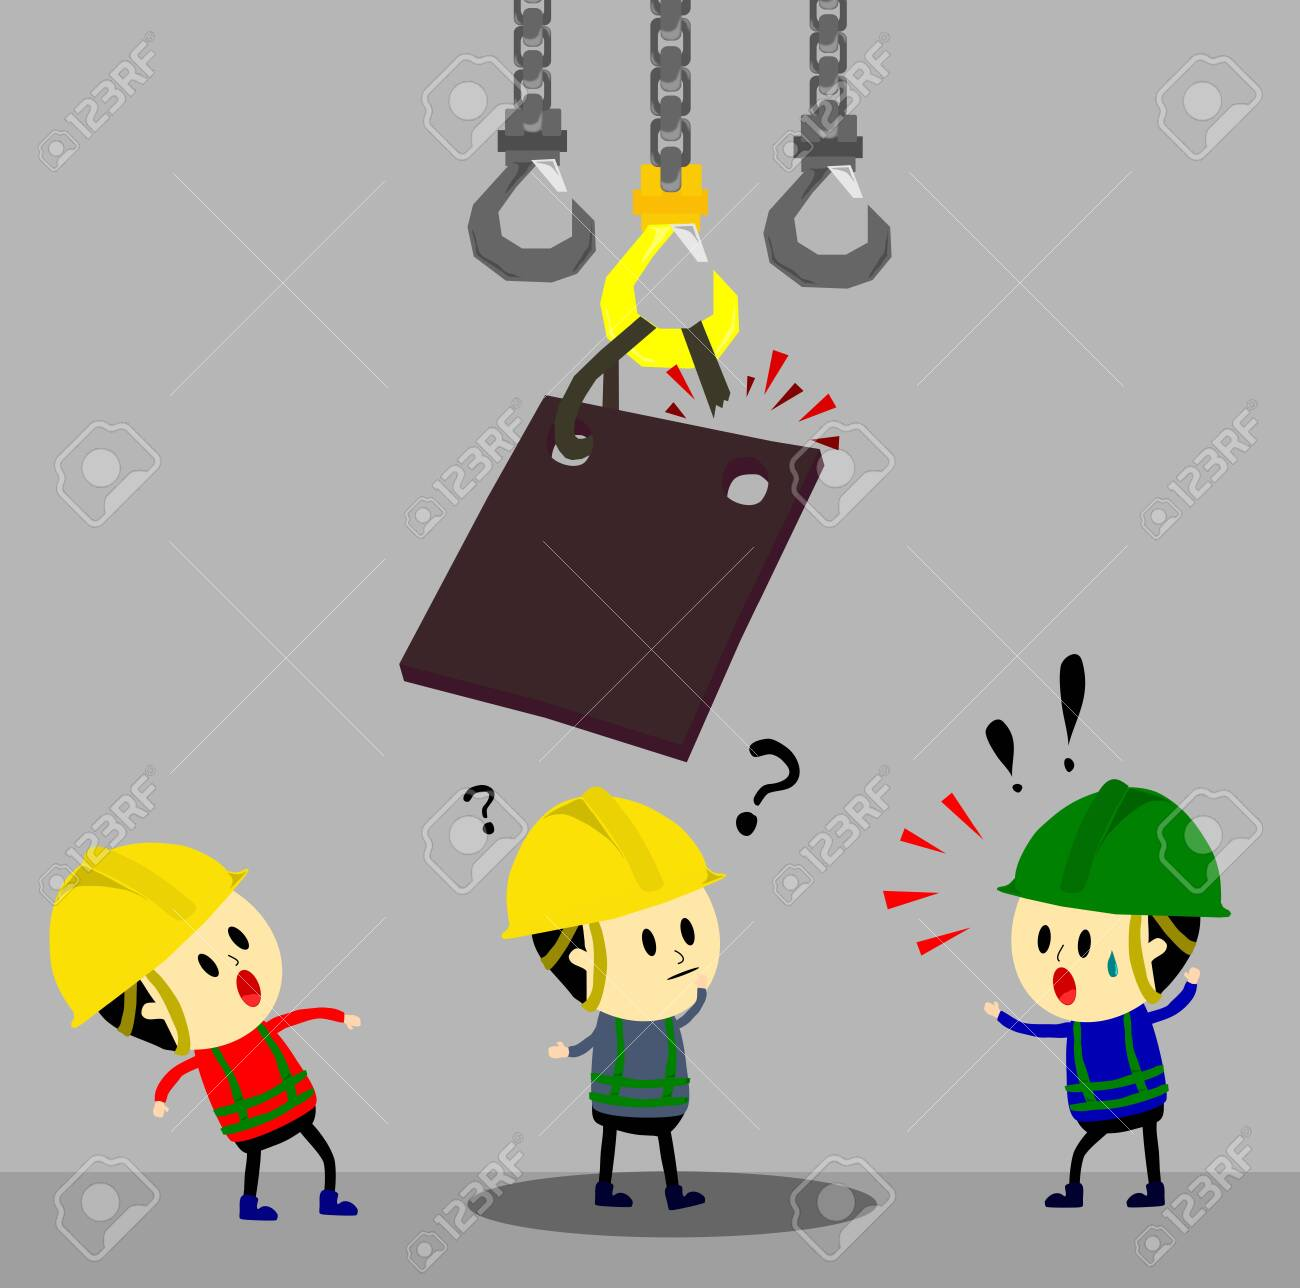 Accident from lifting chain holding heavy metal sheet above worker,unsafe situation,safety engineering cartoon style,Vector - 120781879